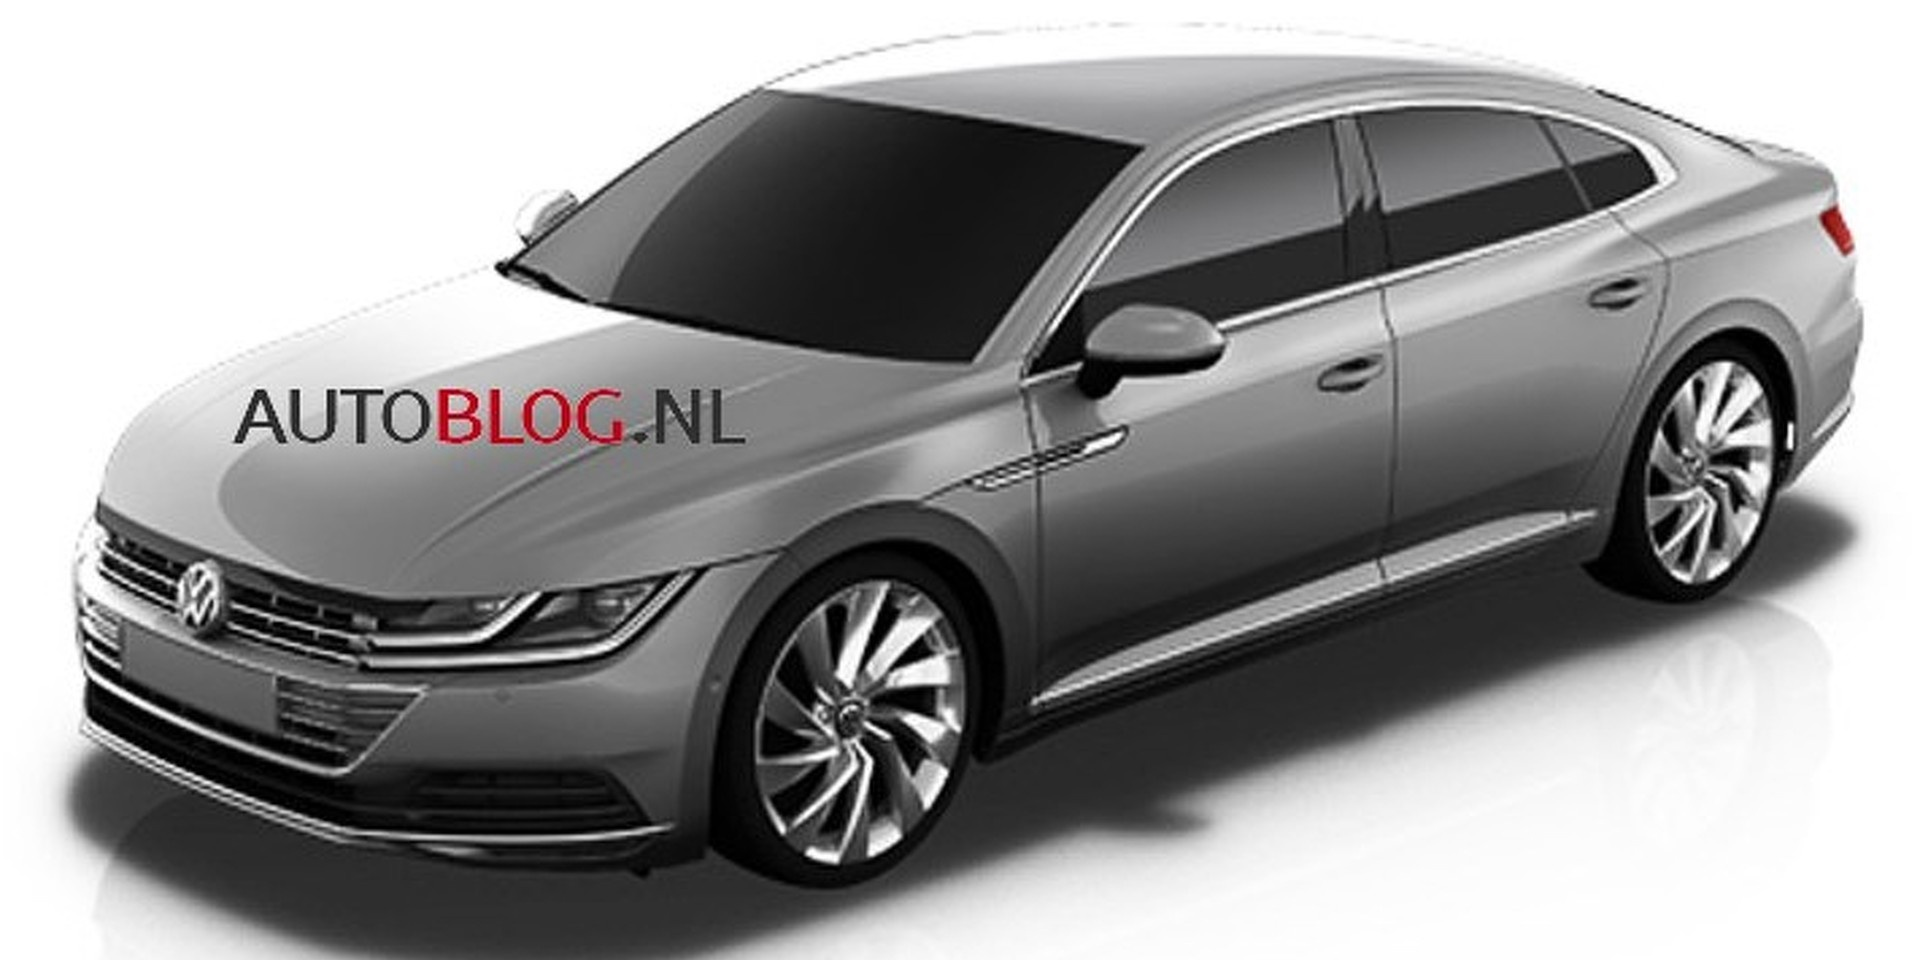 2017 volkswagen cc images of second gen leaked. Black Bedroom Furniture Sets. Home Design Ideas